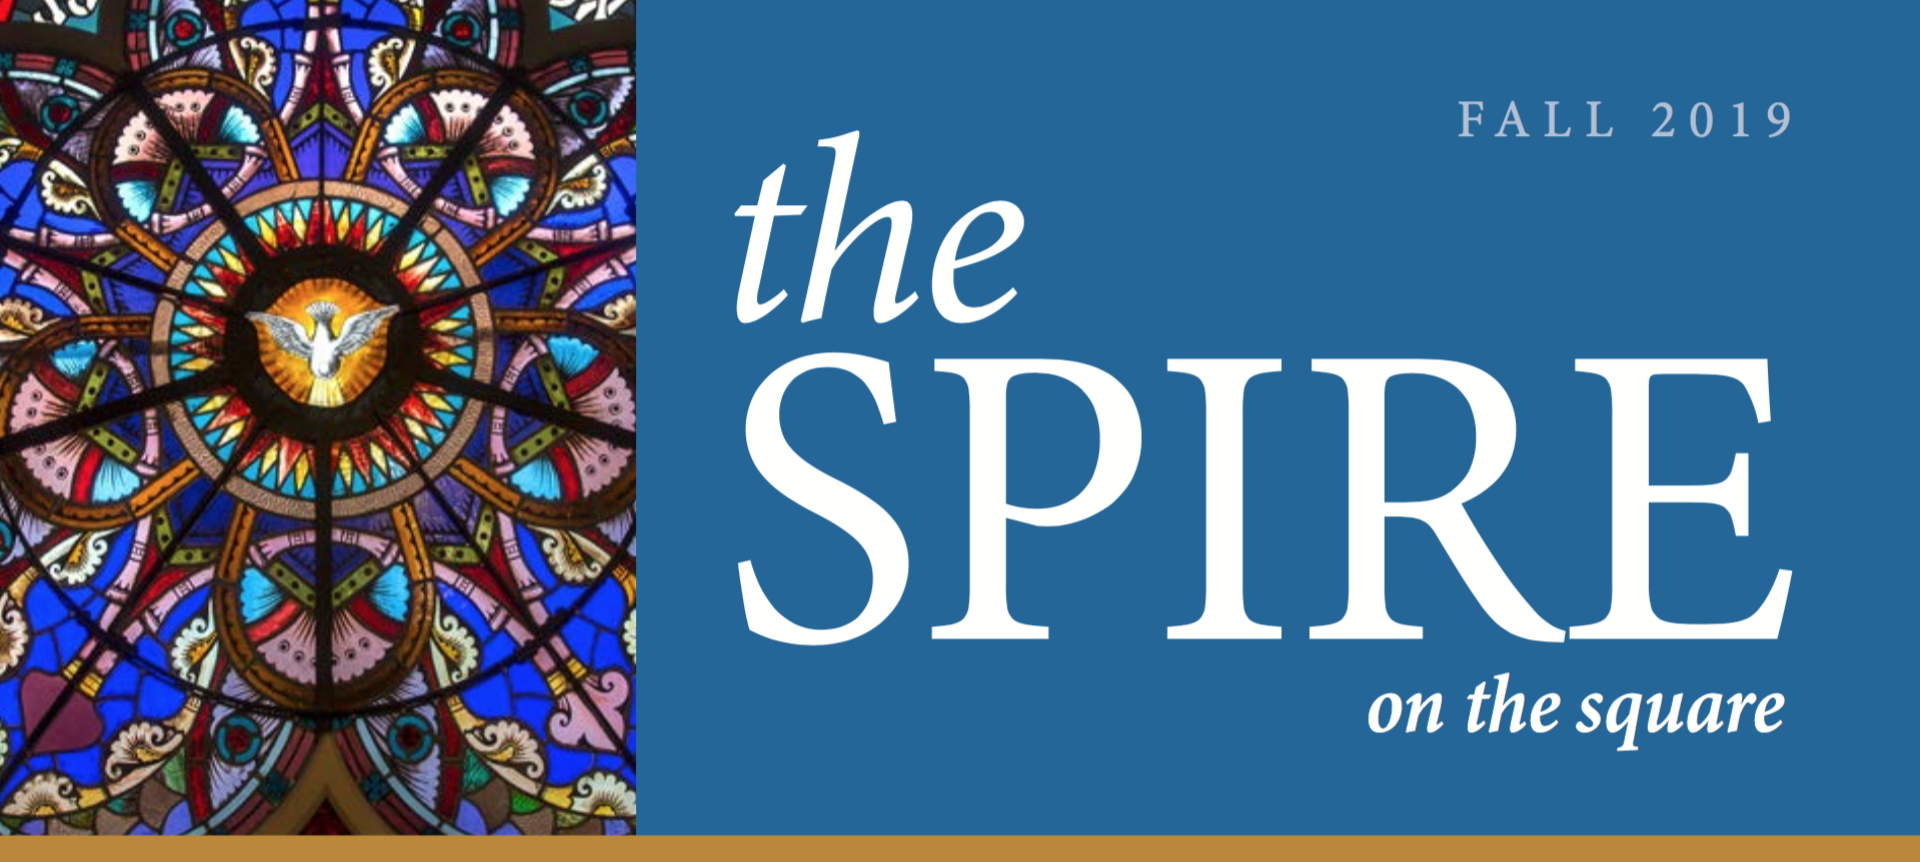 The Spire newsletter banner